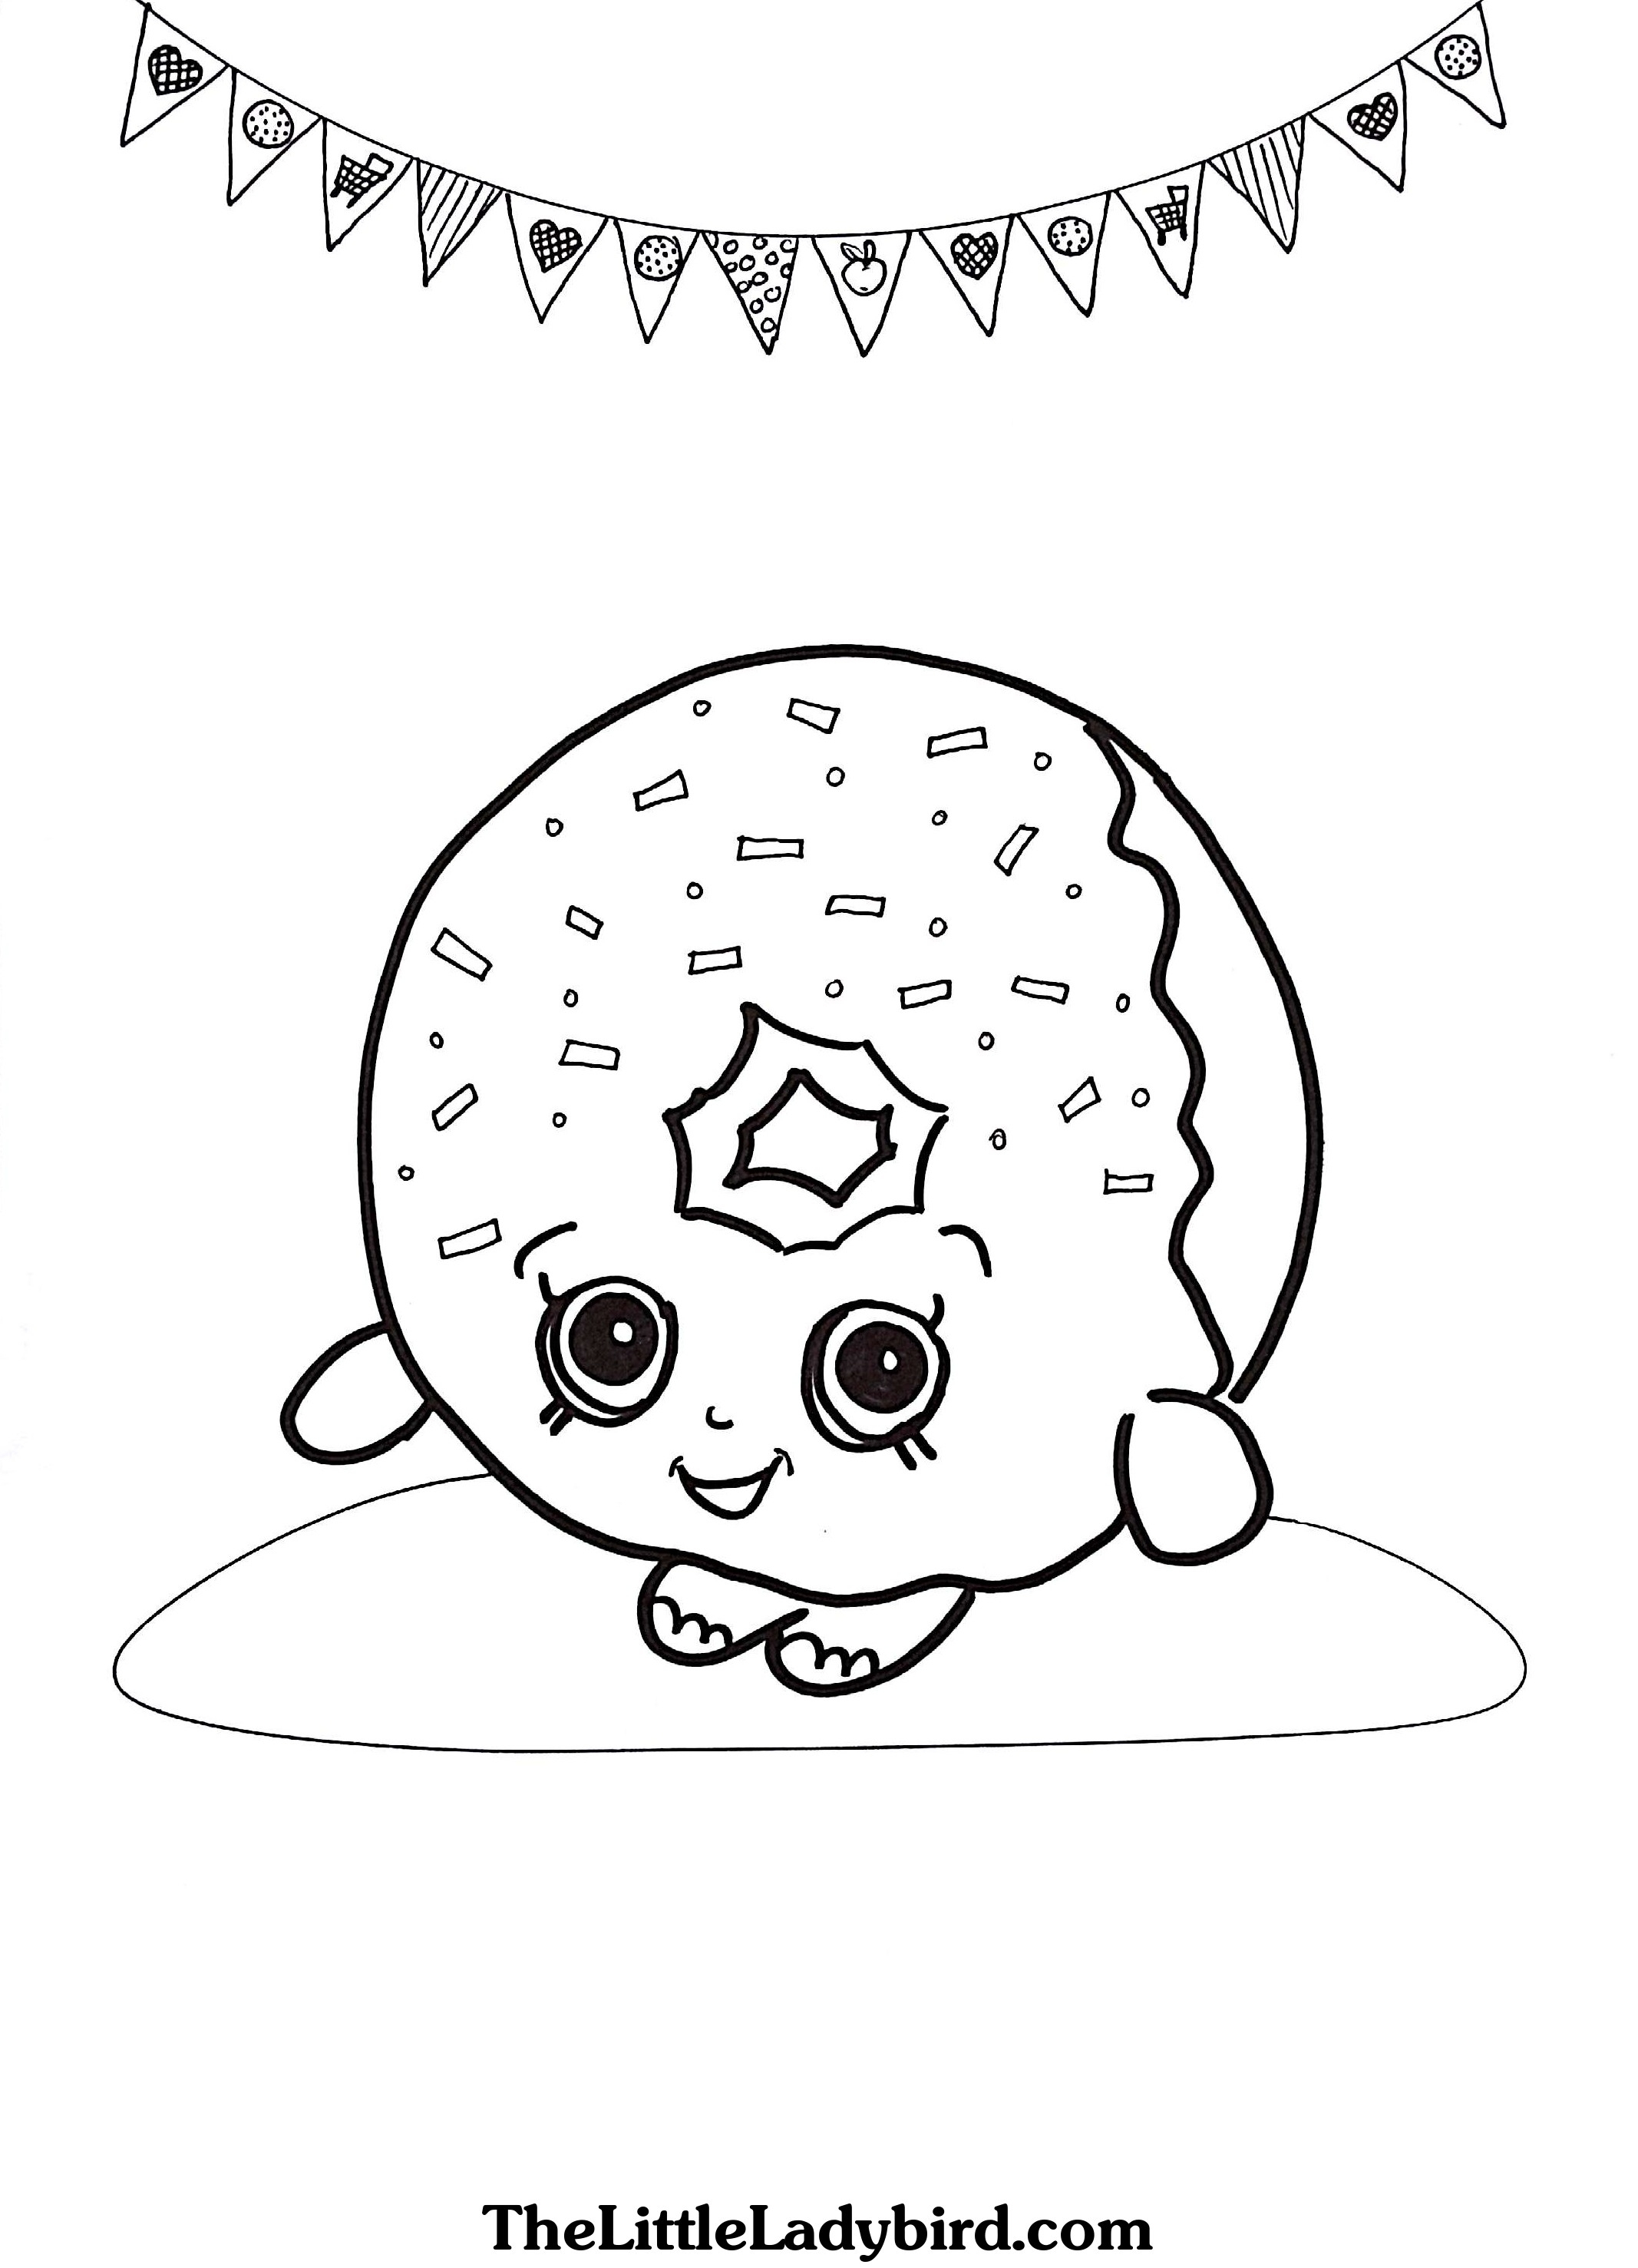 shopkins coloring pages - donut shopkins coloring pages printable 4